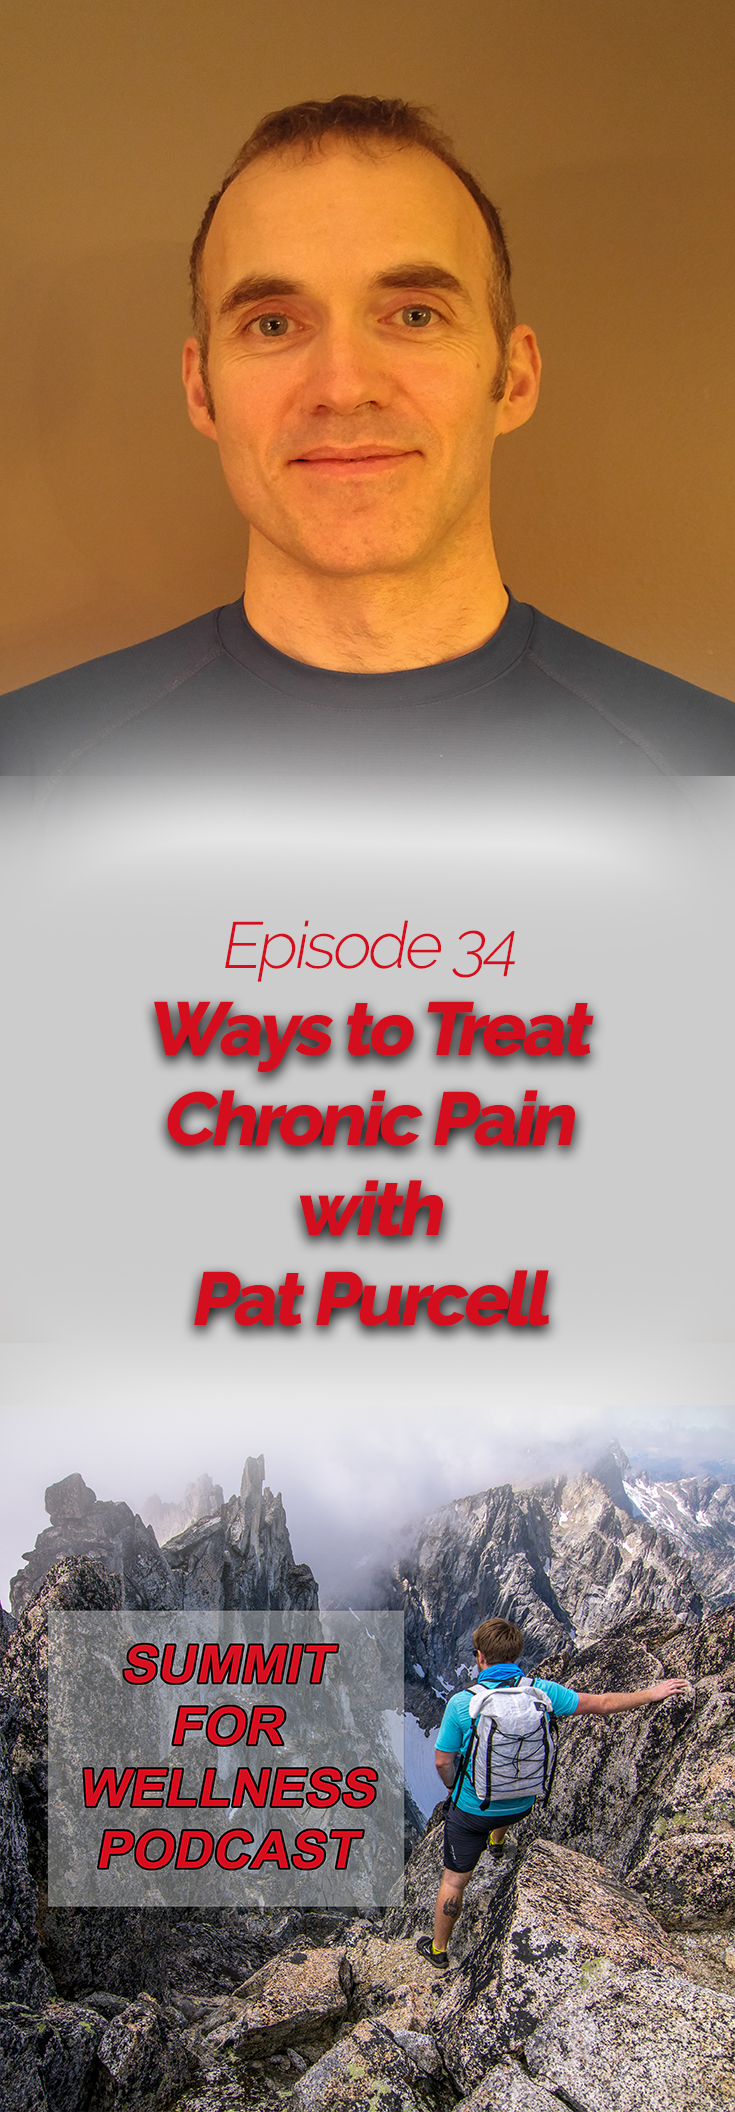 Pat Purcell walks us through ways to help those suffering from chronic pain, and ways to find movement patterns that work for their body.